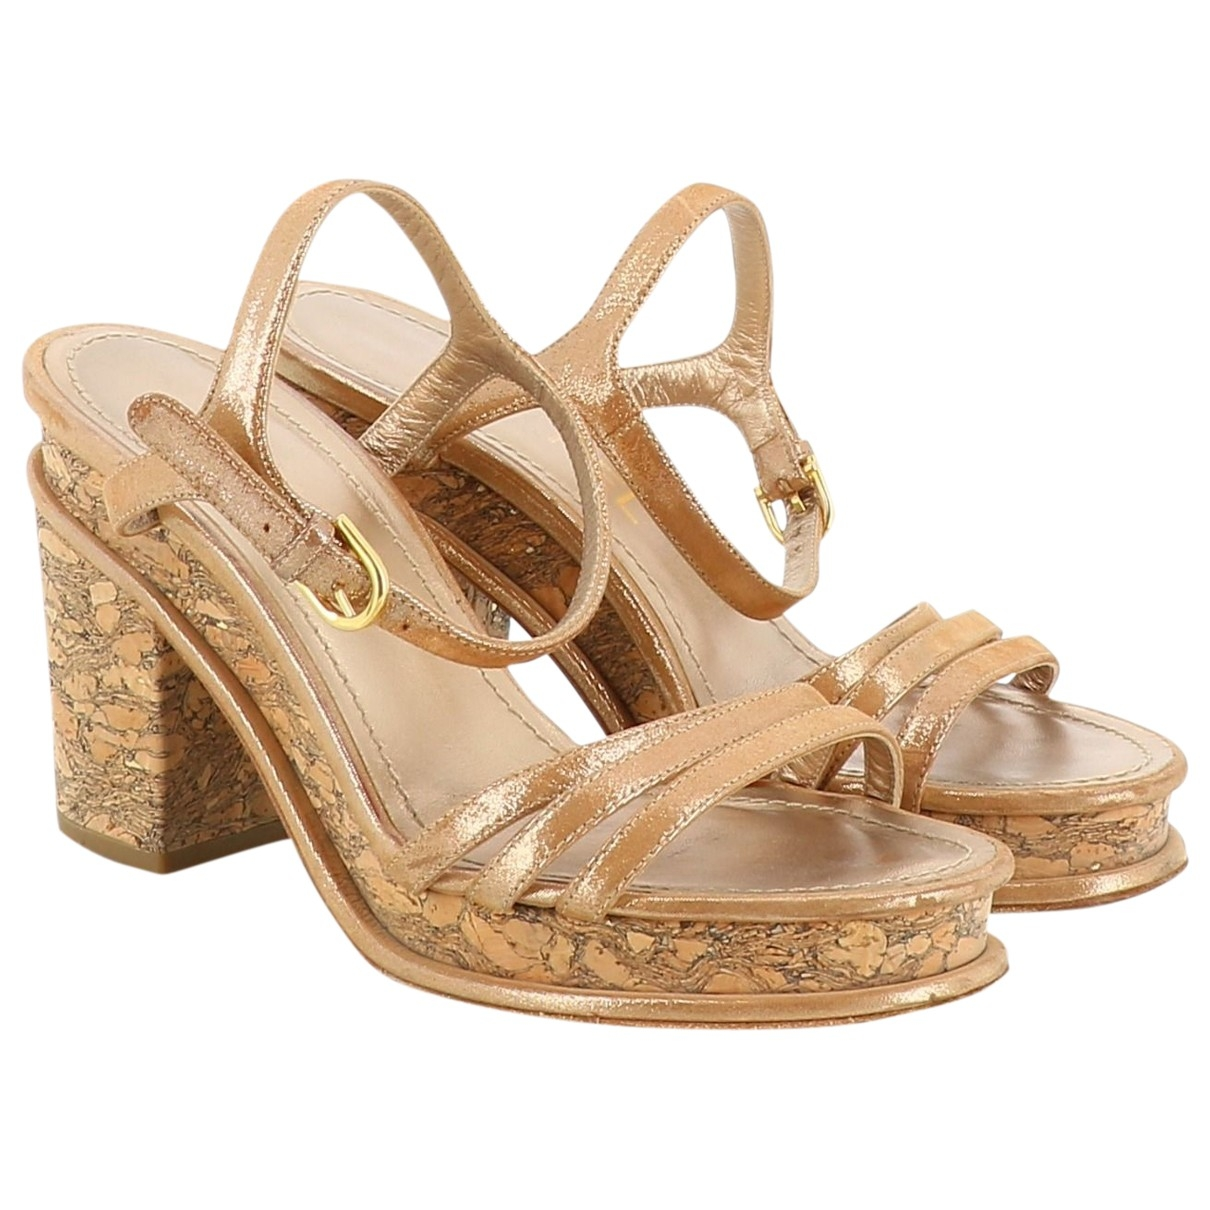 Chanel \N Camel Leather Sandals for Women 36 EU